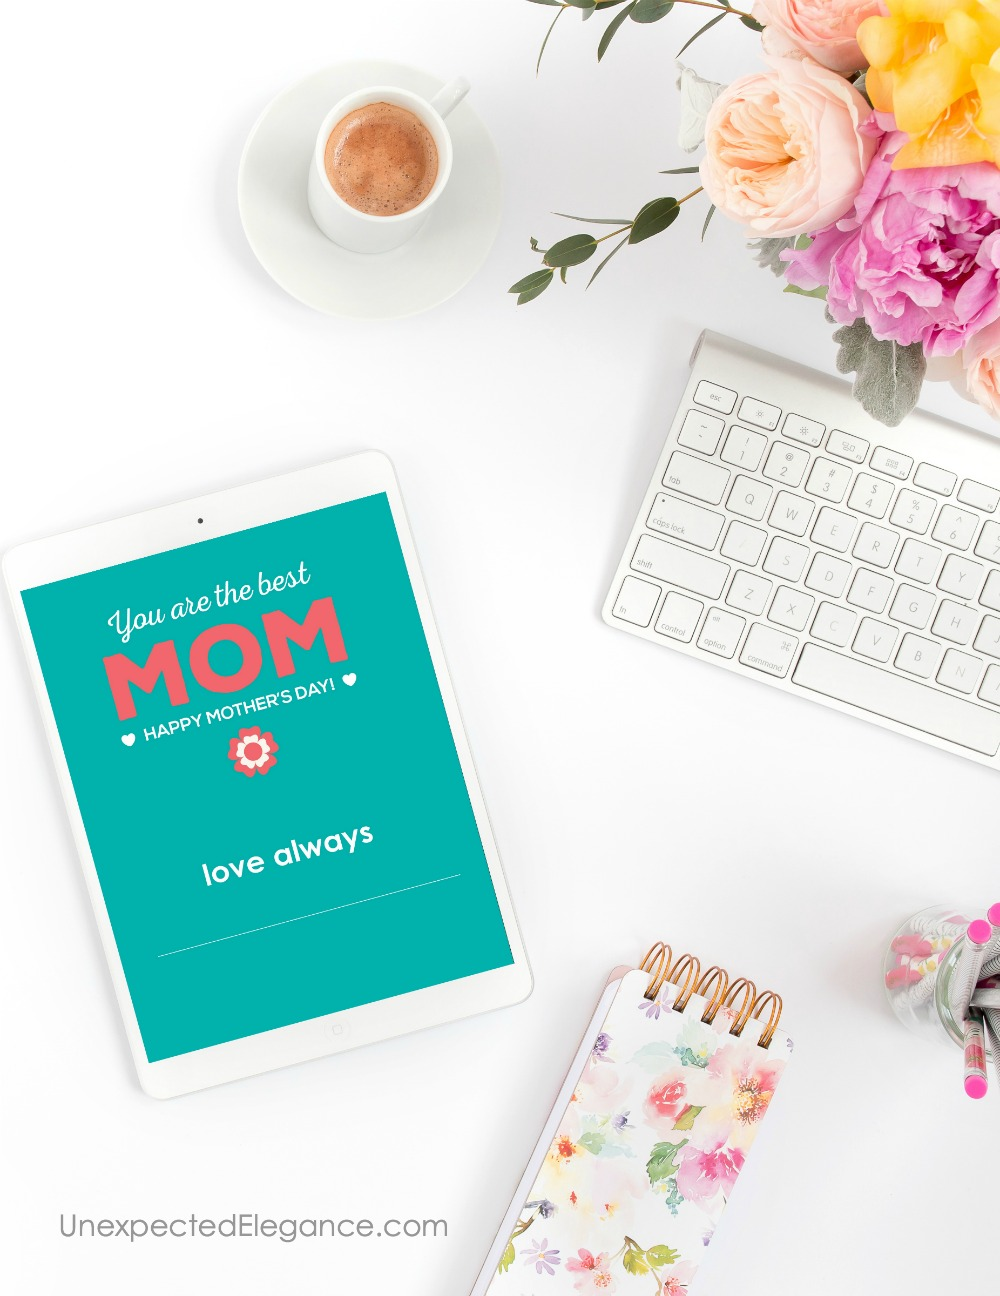 Need a last minute gift for Mother's Day?? This set of 4 Mother's Day Gift printables are great to personalize as the gift or add to one you already have!